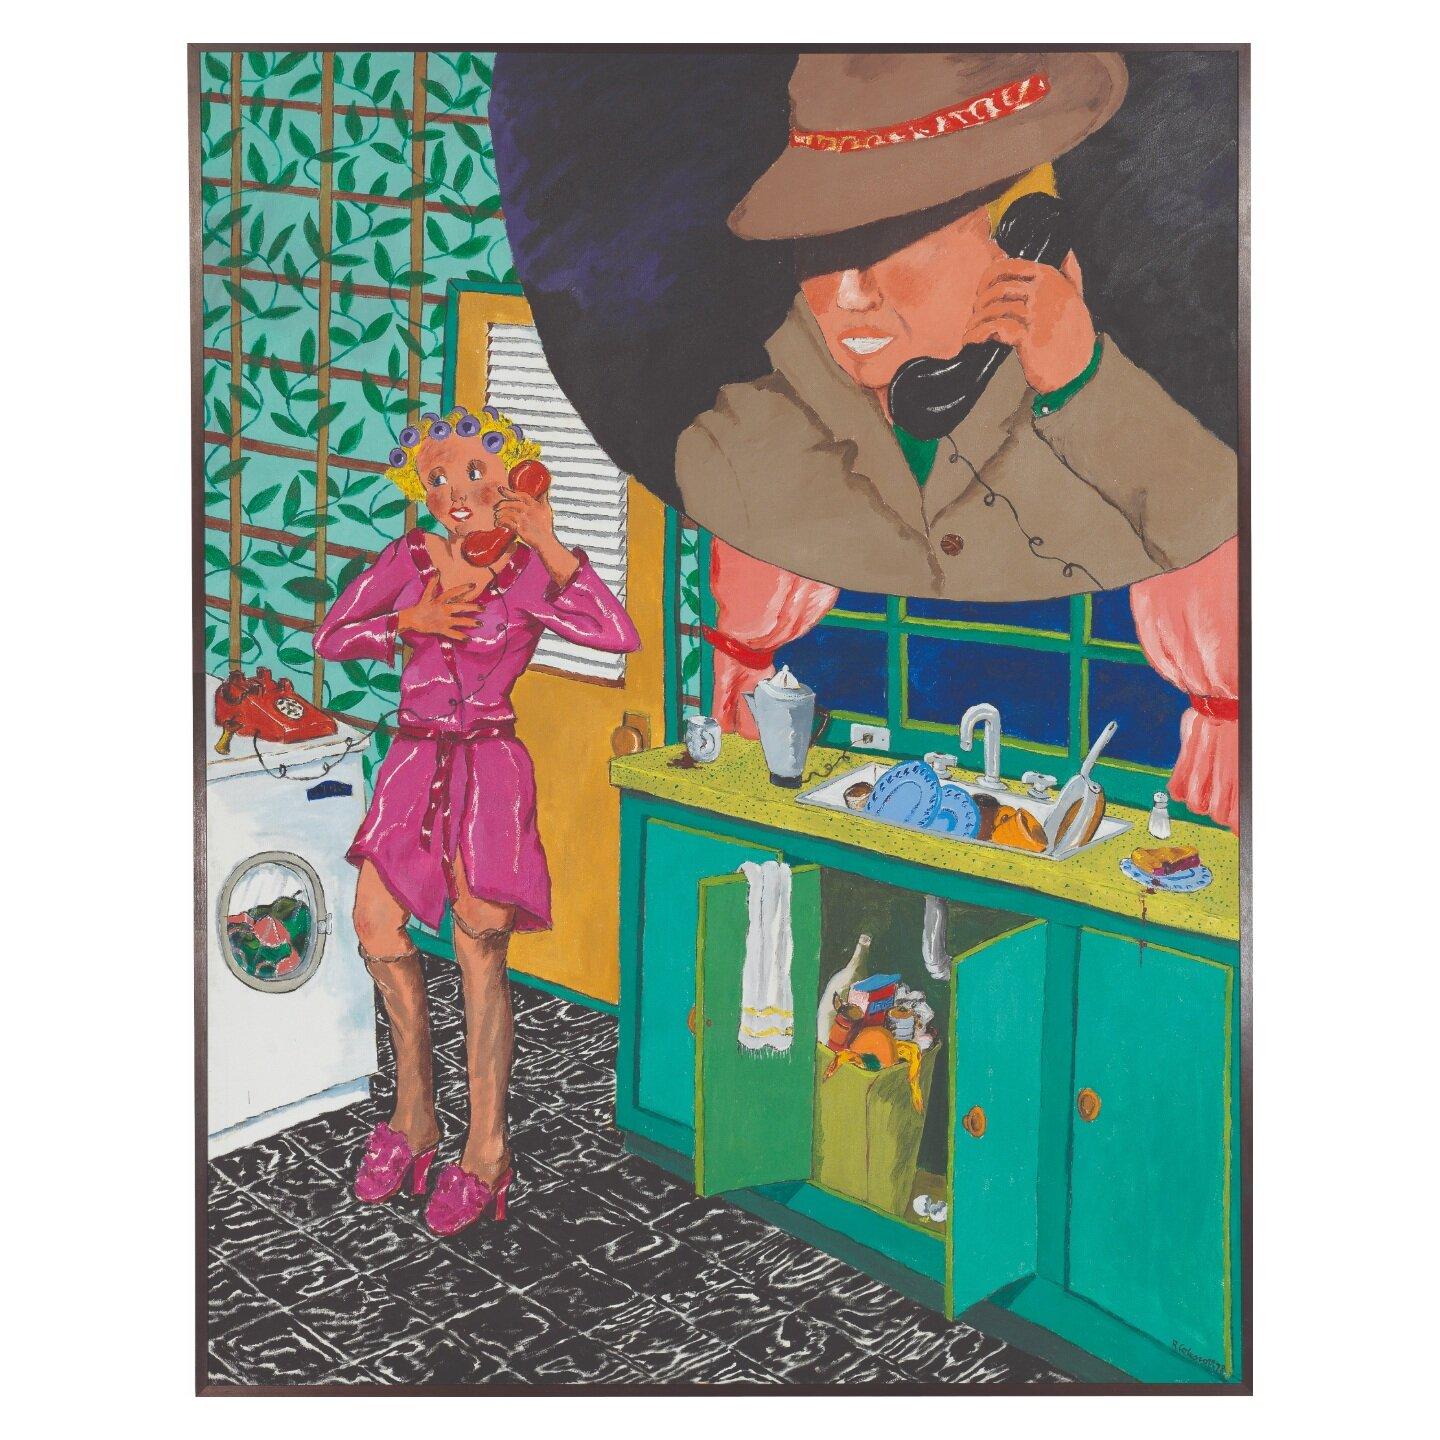 Robert Colescott - The Phone CallOil on canvas84 x 65 3/8 in. Painted in 1978.On view: September 27 - November 3, 2019